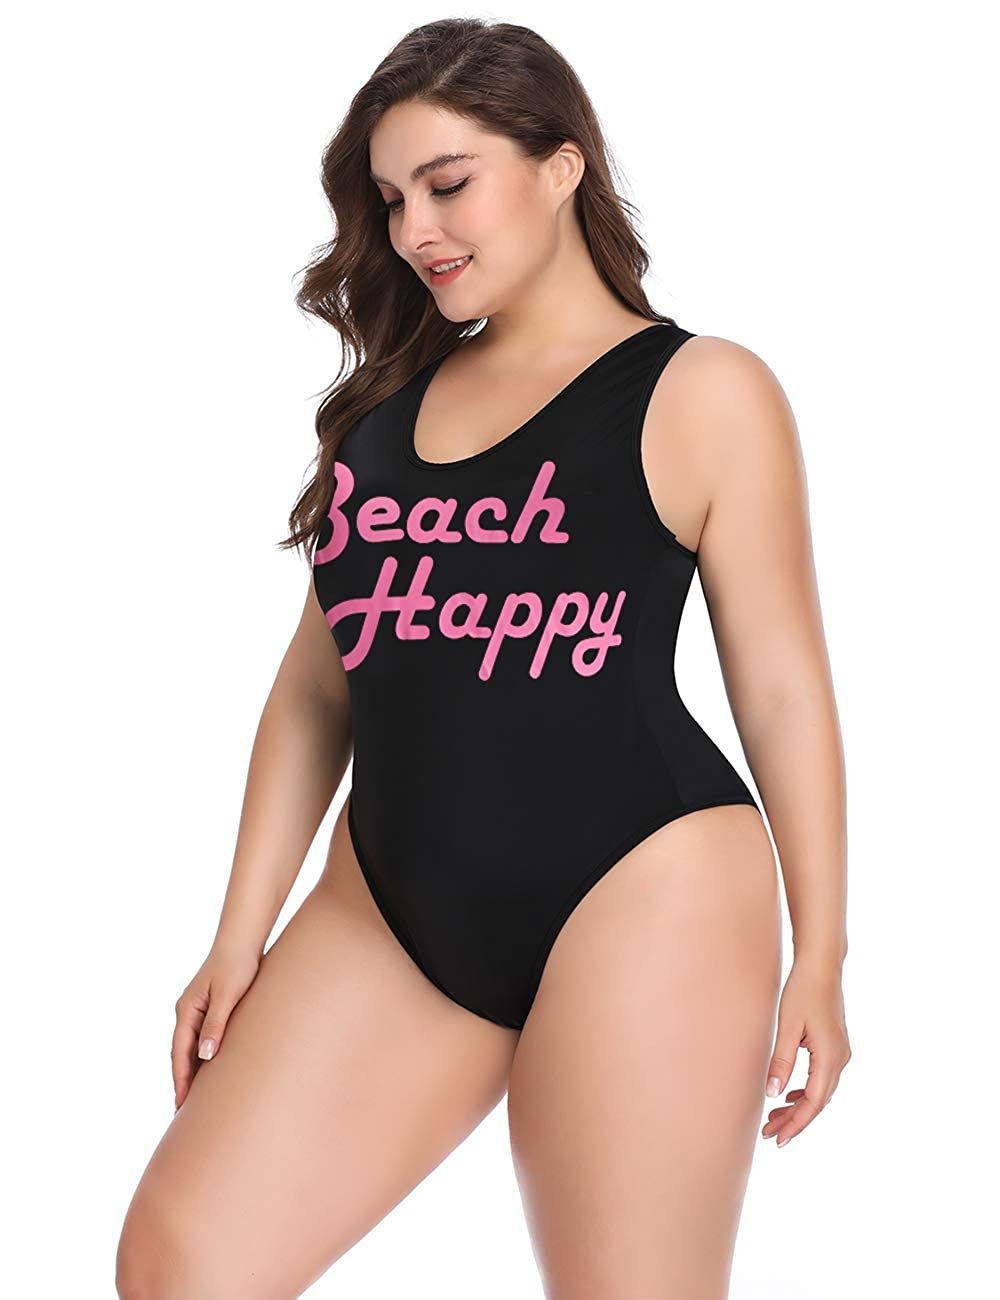 4d455477b9d ALONG FIT Women's Plus Size Swimwear with High Cut and Low Back One Piece  Swimsuits Bathing Suit for Women